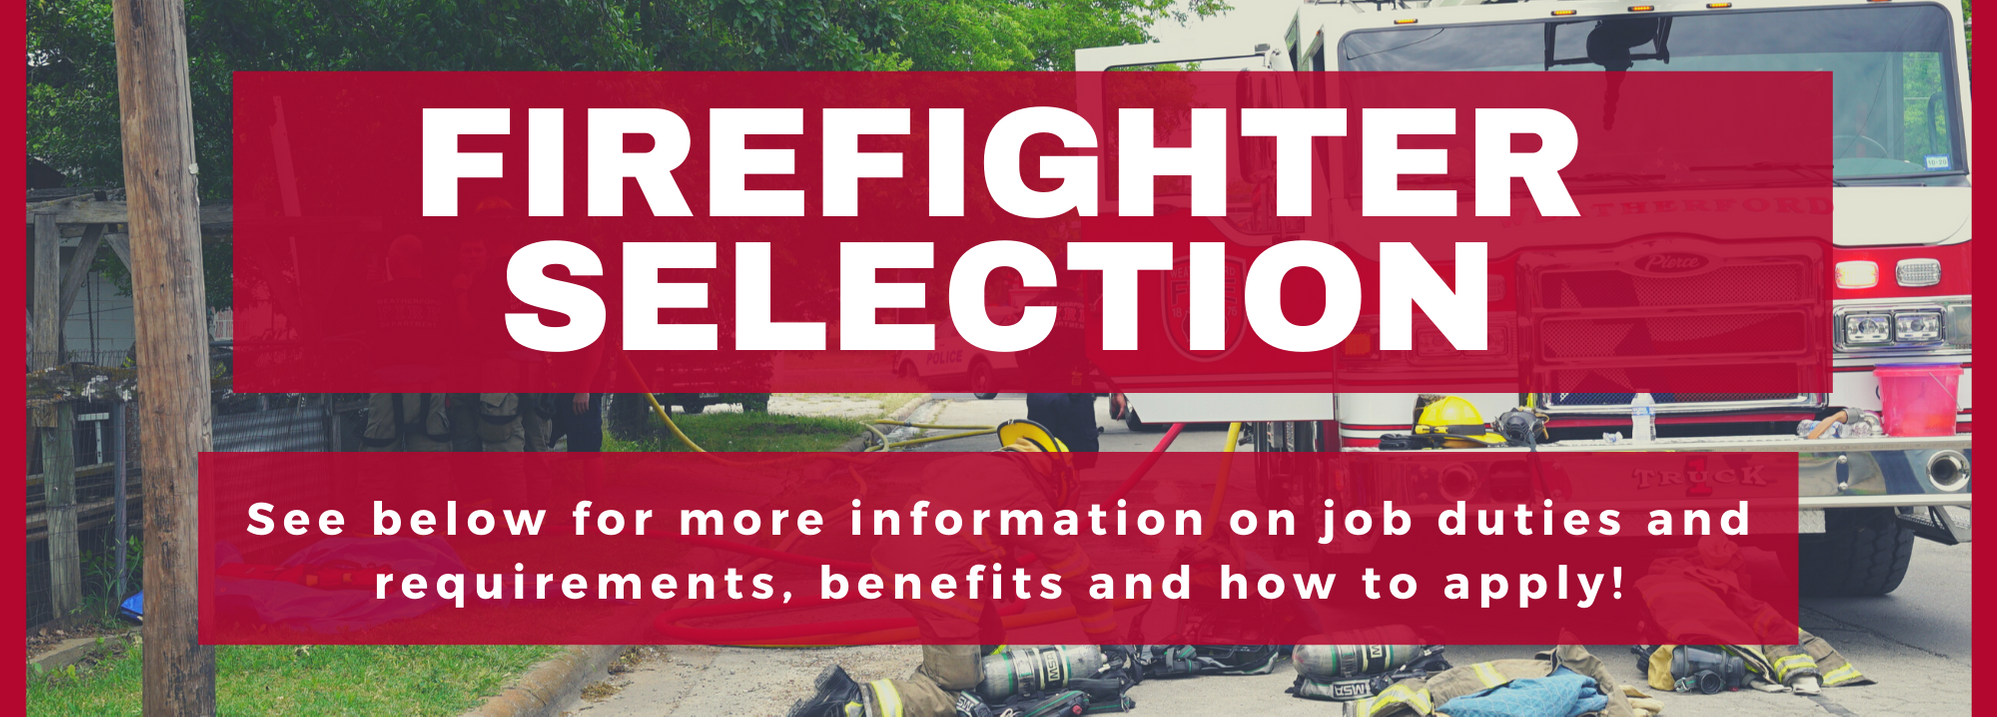 Firefighter Selection - WFD - website banner